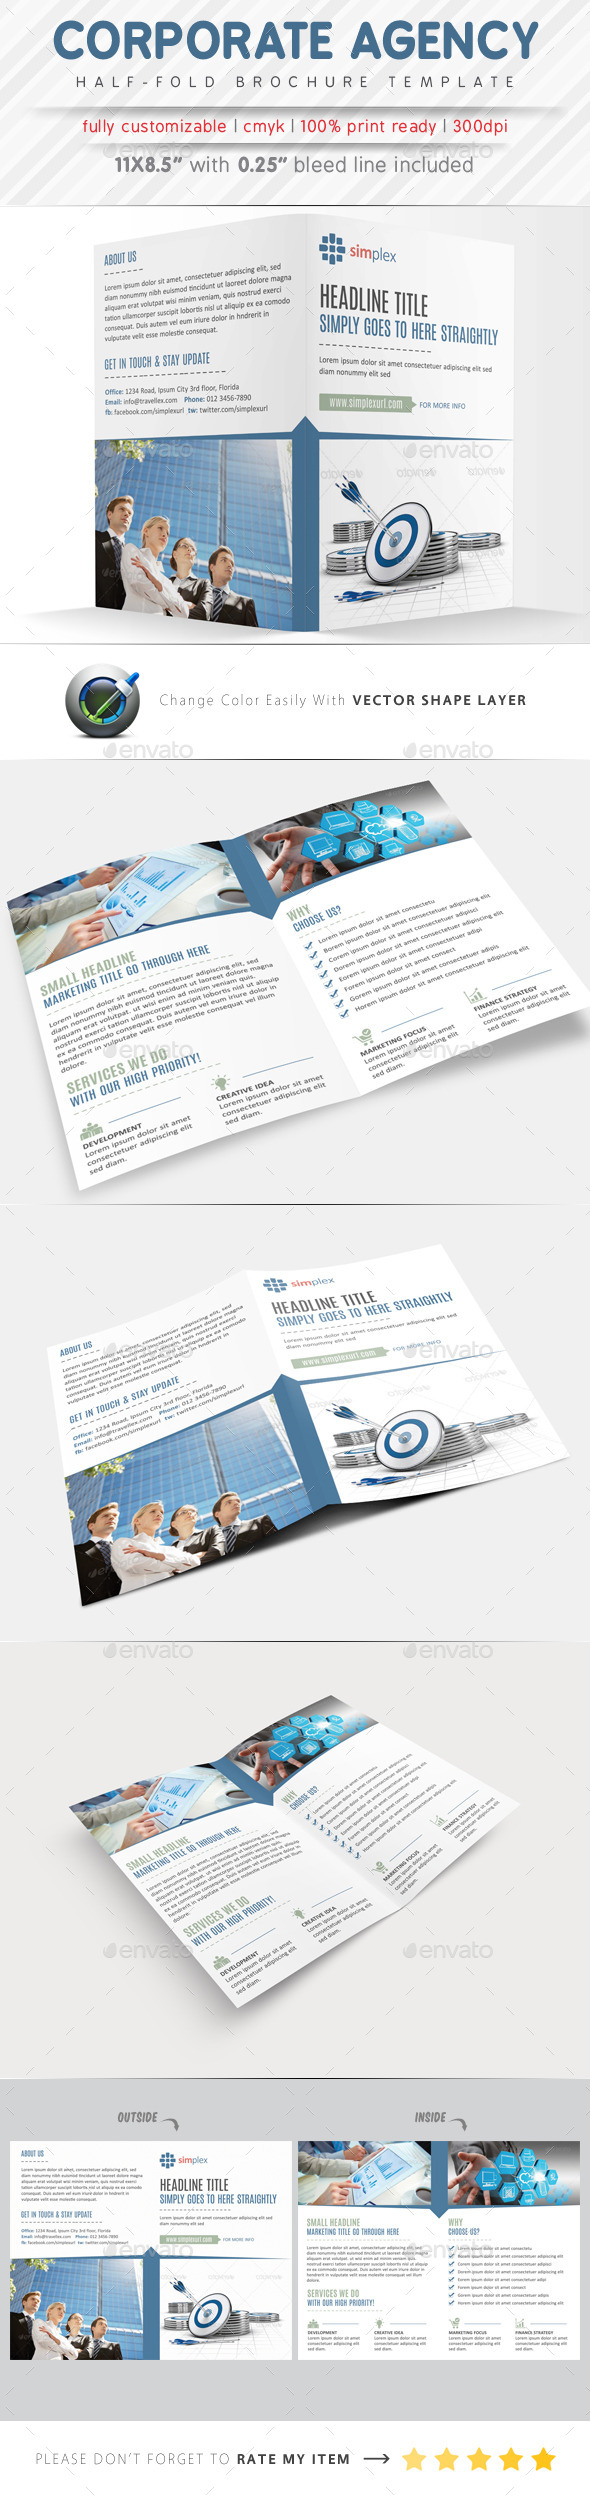 Corporate Agency Half Fold Brochure - Corporate Brochures